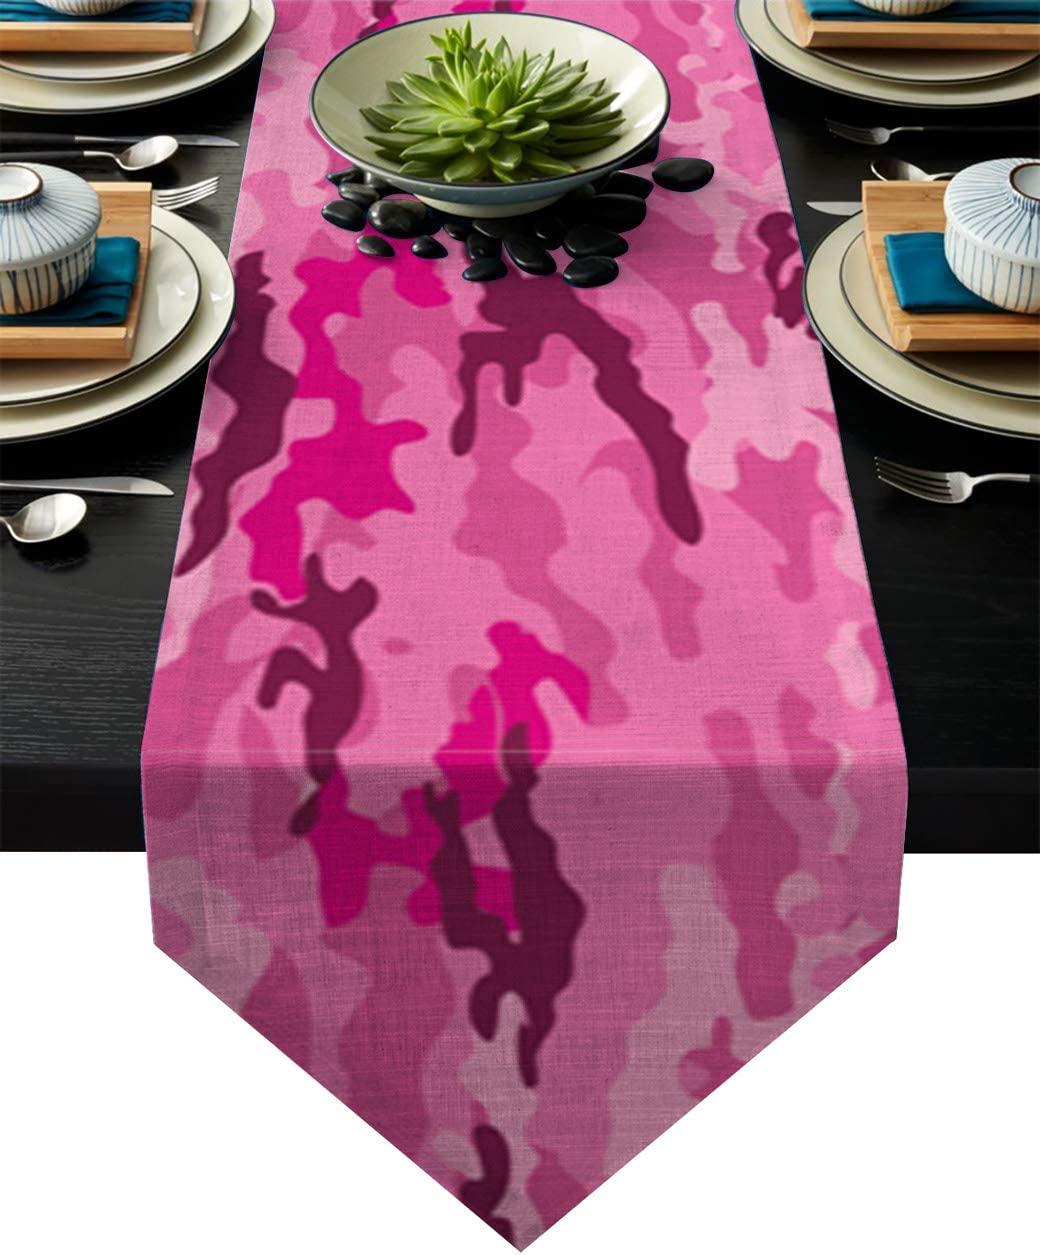 Amazon Com Independence Day Cotton Rectangle Table Runner Camouflage Netting Camo Pink Non Slip Linen Family Dinners Outdoor Parties Wedding Everyday Decorations 13x90 Inch Home Kitchen